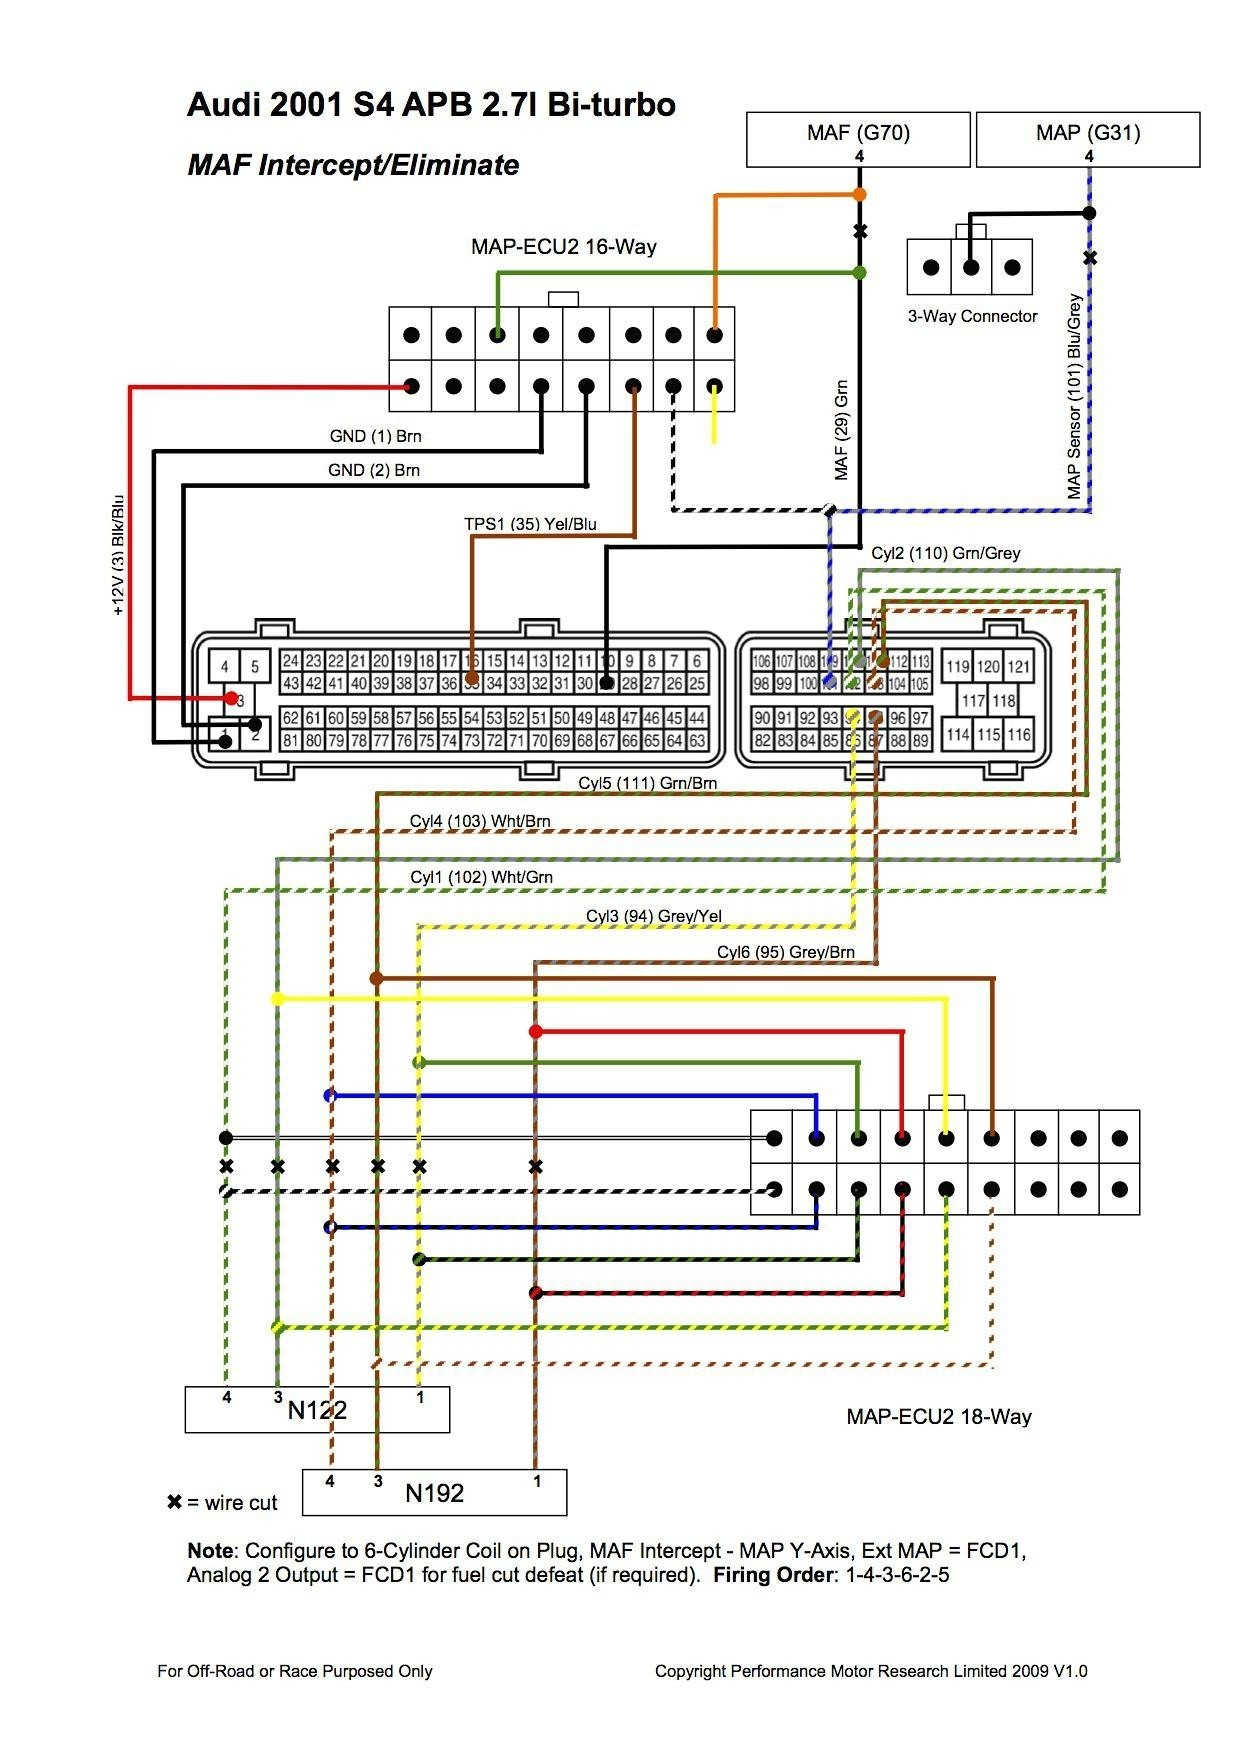 1996 dodge ram 1500 radio wiring diagram unique wiring diagram image 99 dodge ram 1500 radio wiring diagram fresh 96 dodge ram 1500 tail light wiring diagram asfbconference2016 Image collections